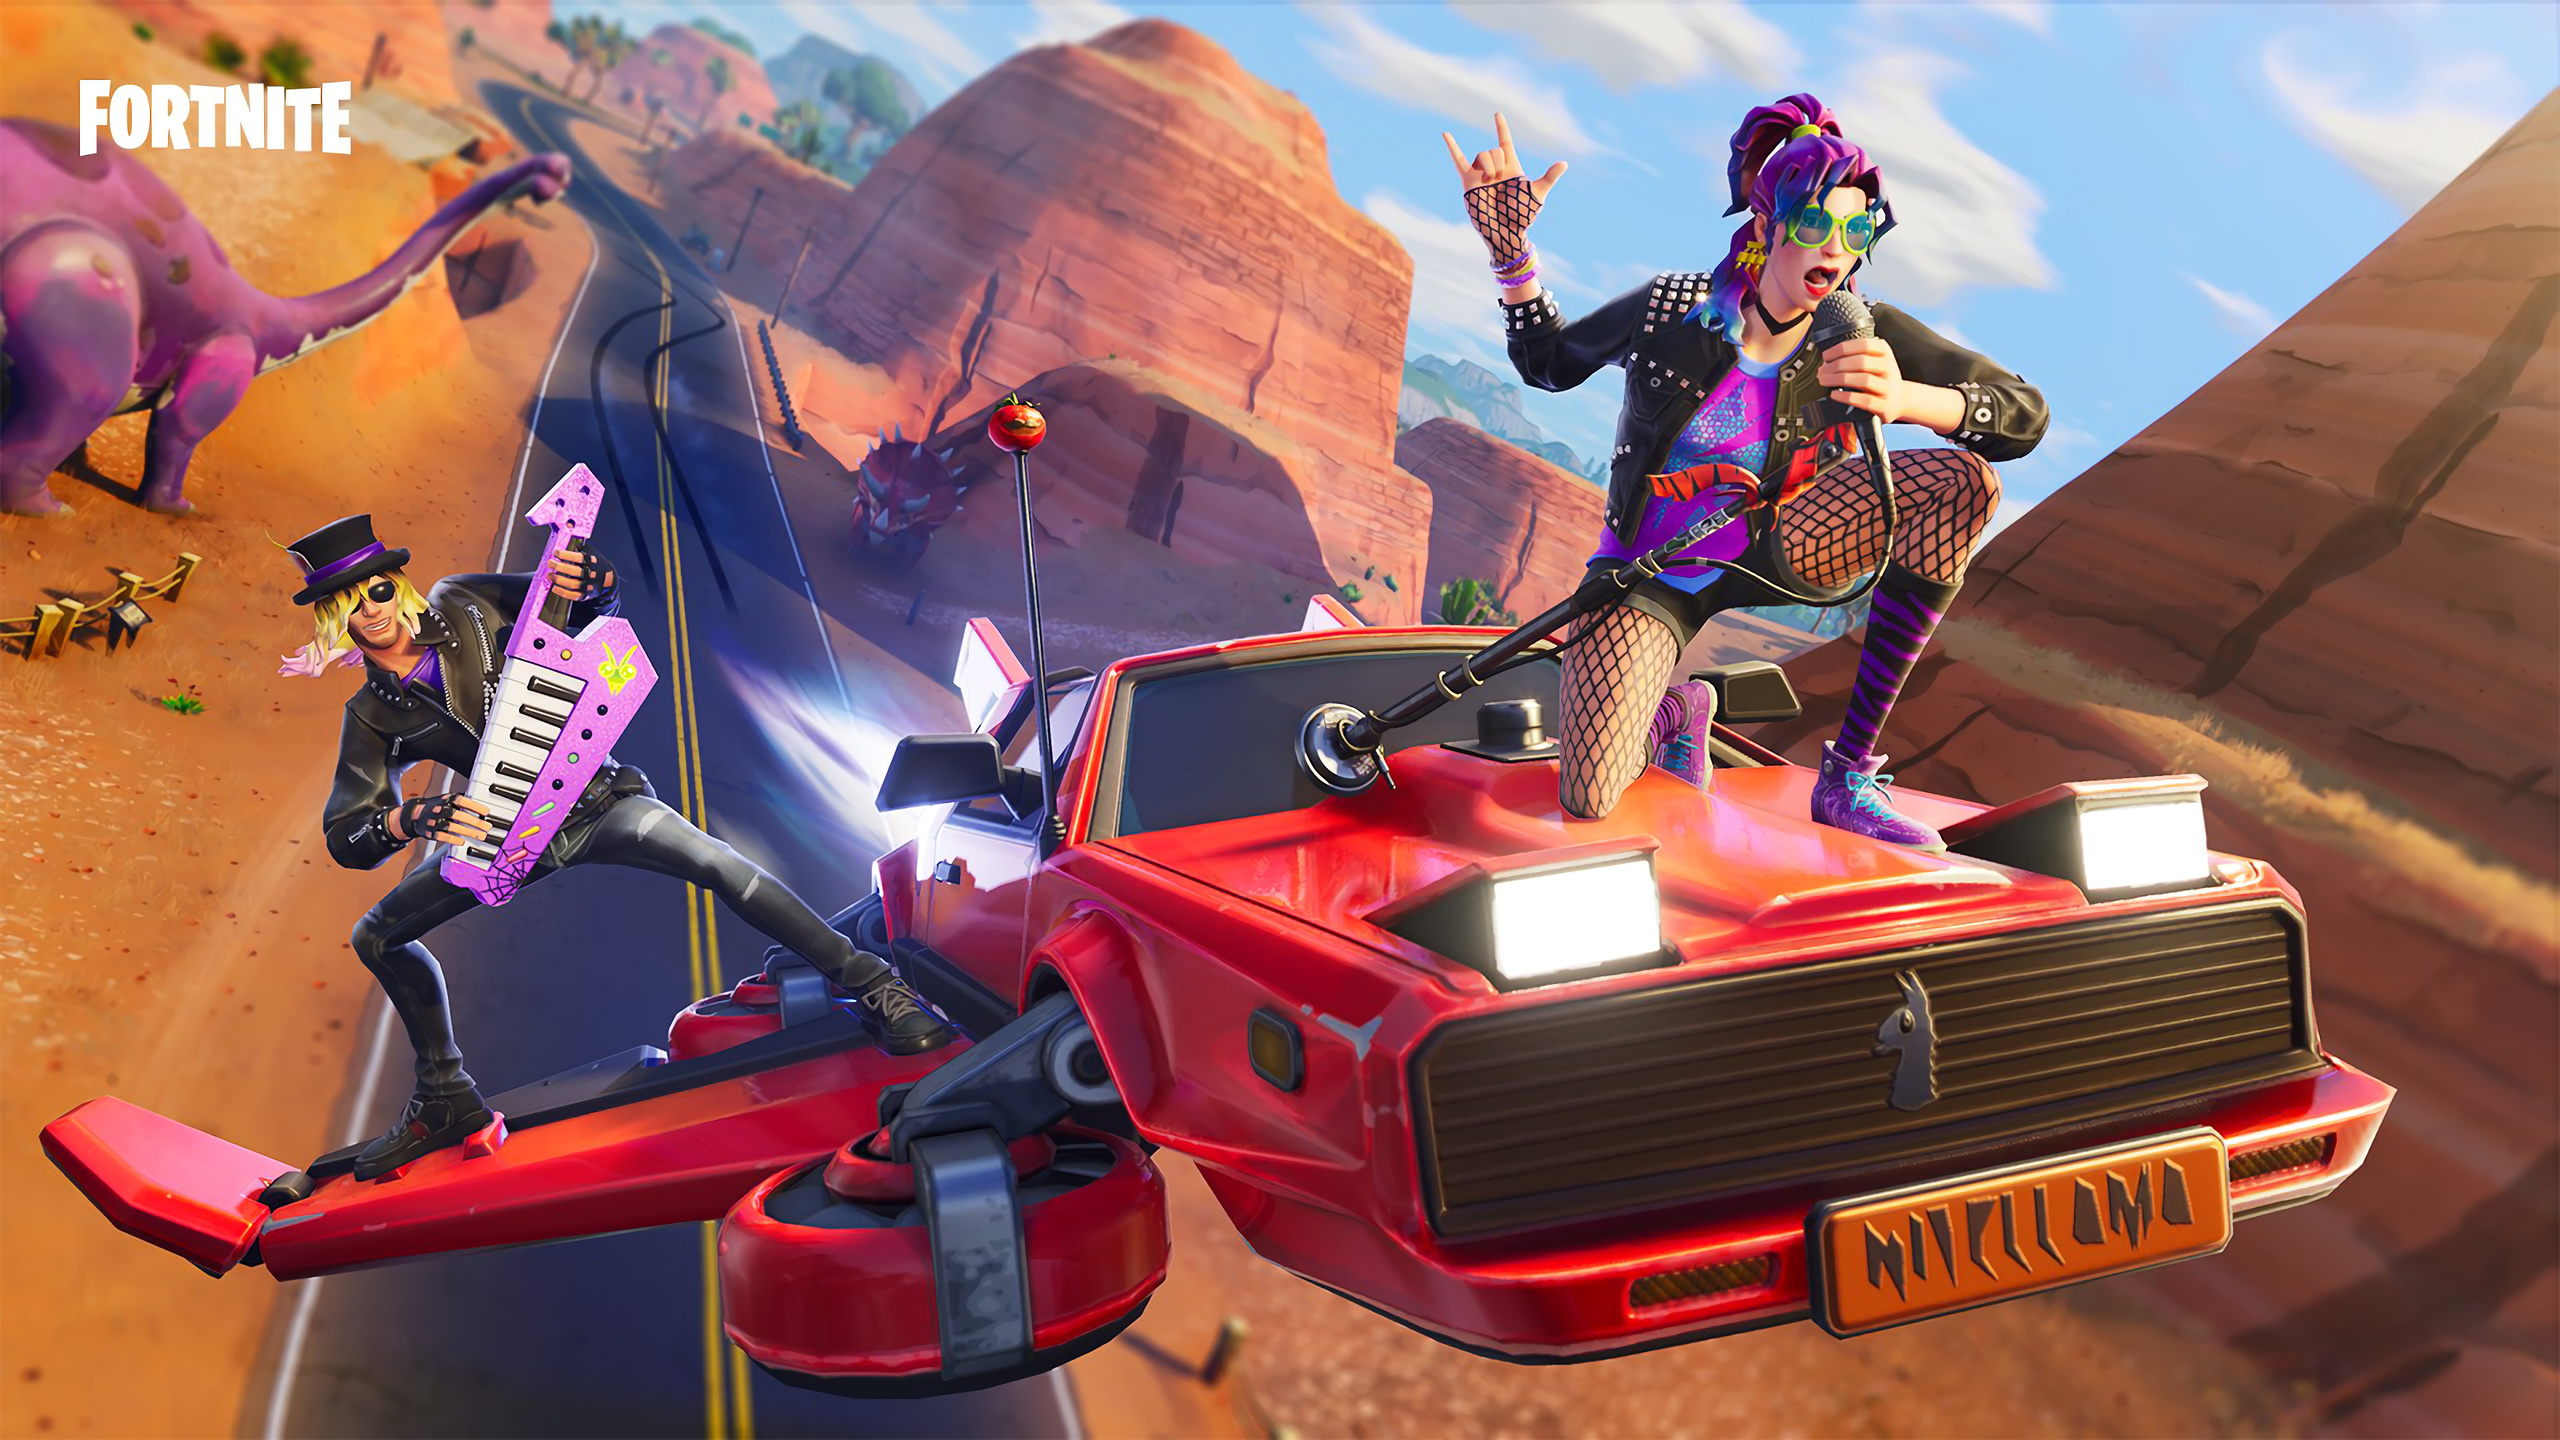 Free Download 2560x1440 Stage Slayer And Synth Star Fortnite Battle Royale 1440p 2560x1440 For Your Desktop Mobile Tablet Explore 24 Synth Star Fortnite Wallpapers Synth Star Fortnite Wallpapers Cloaked